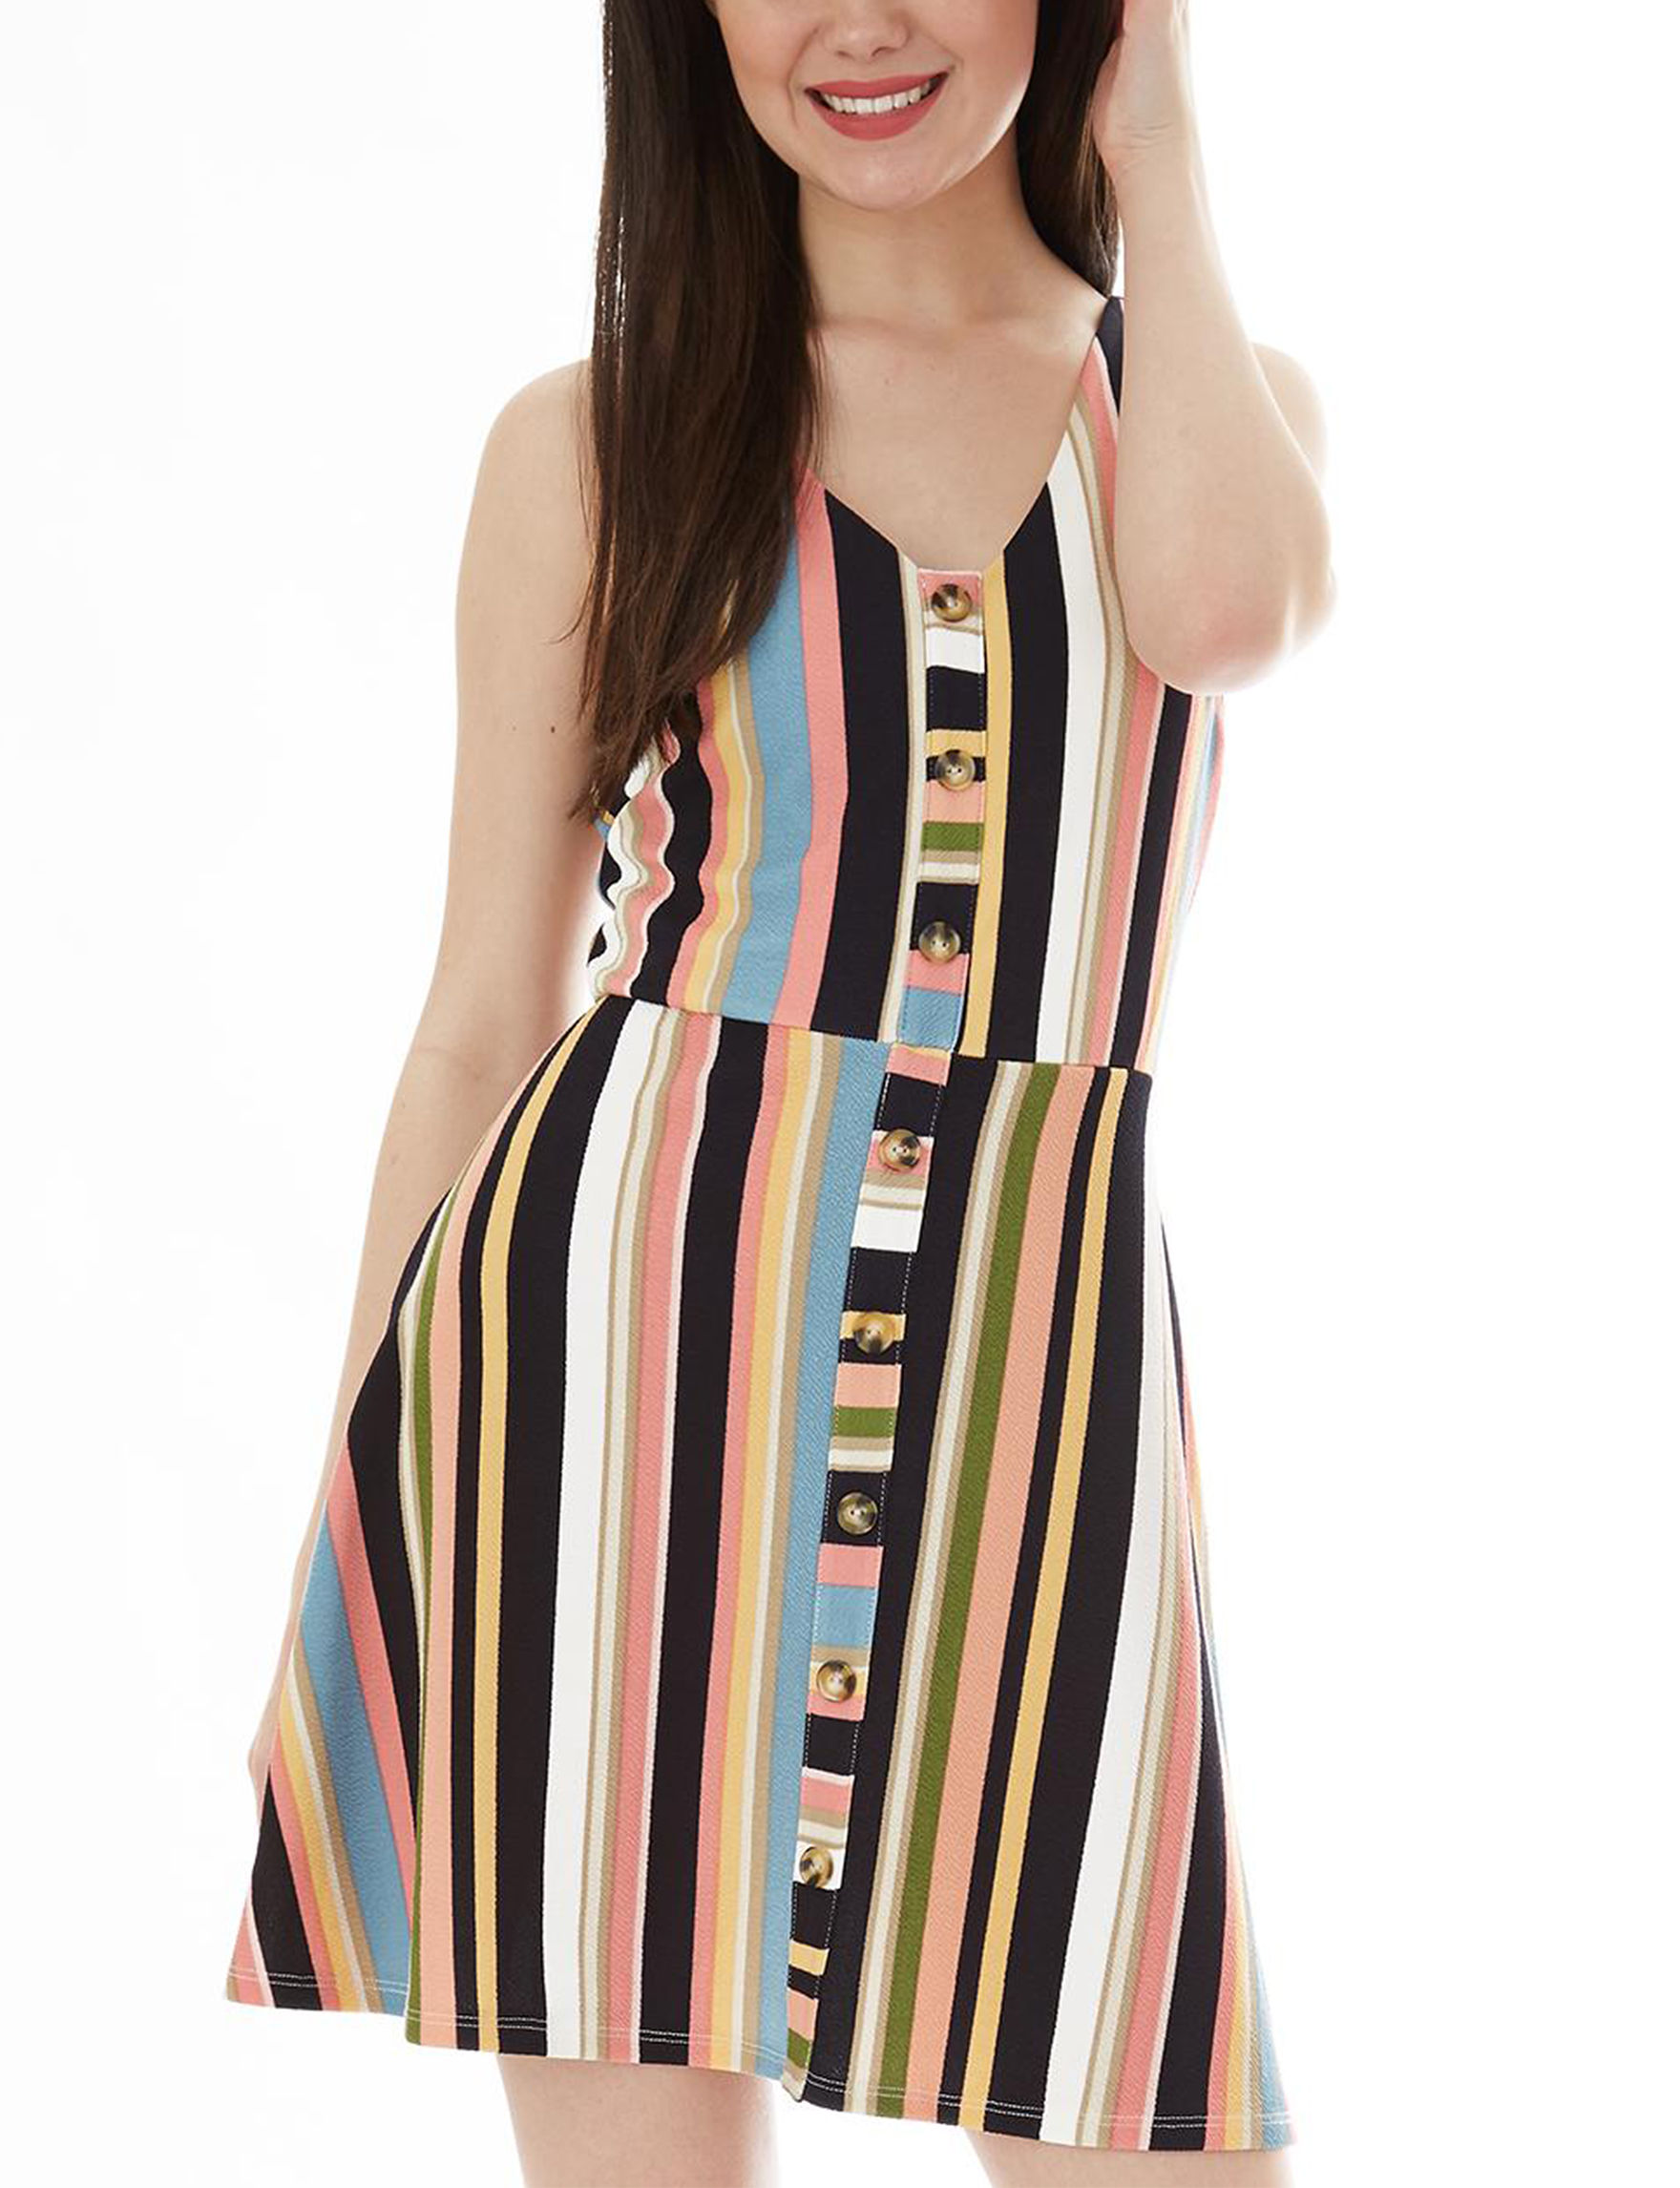 A. Byer Black Multi Everyday & Casual Sheath Dresses